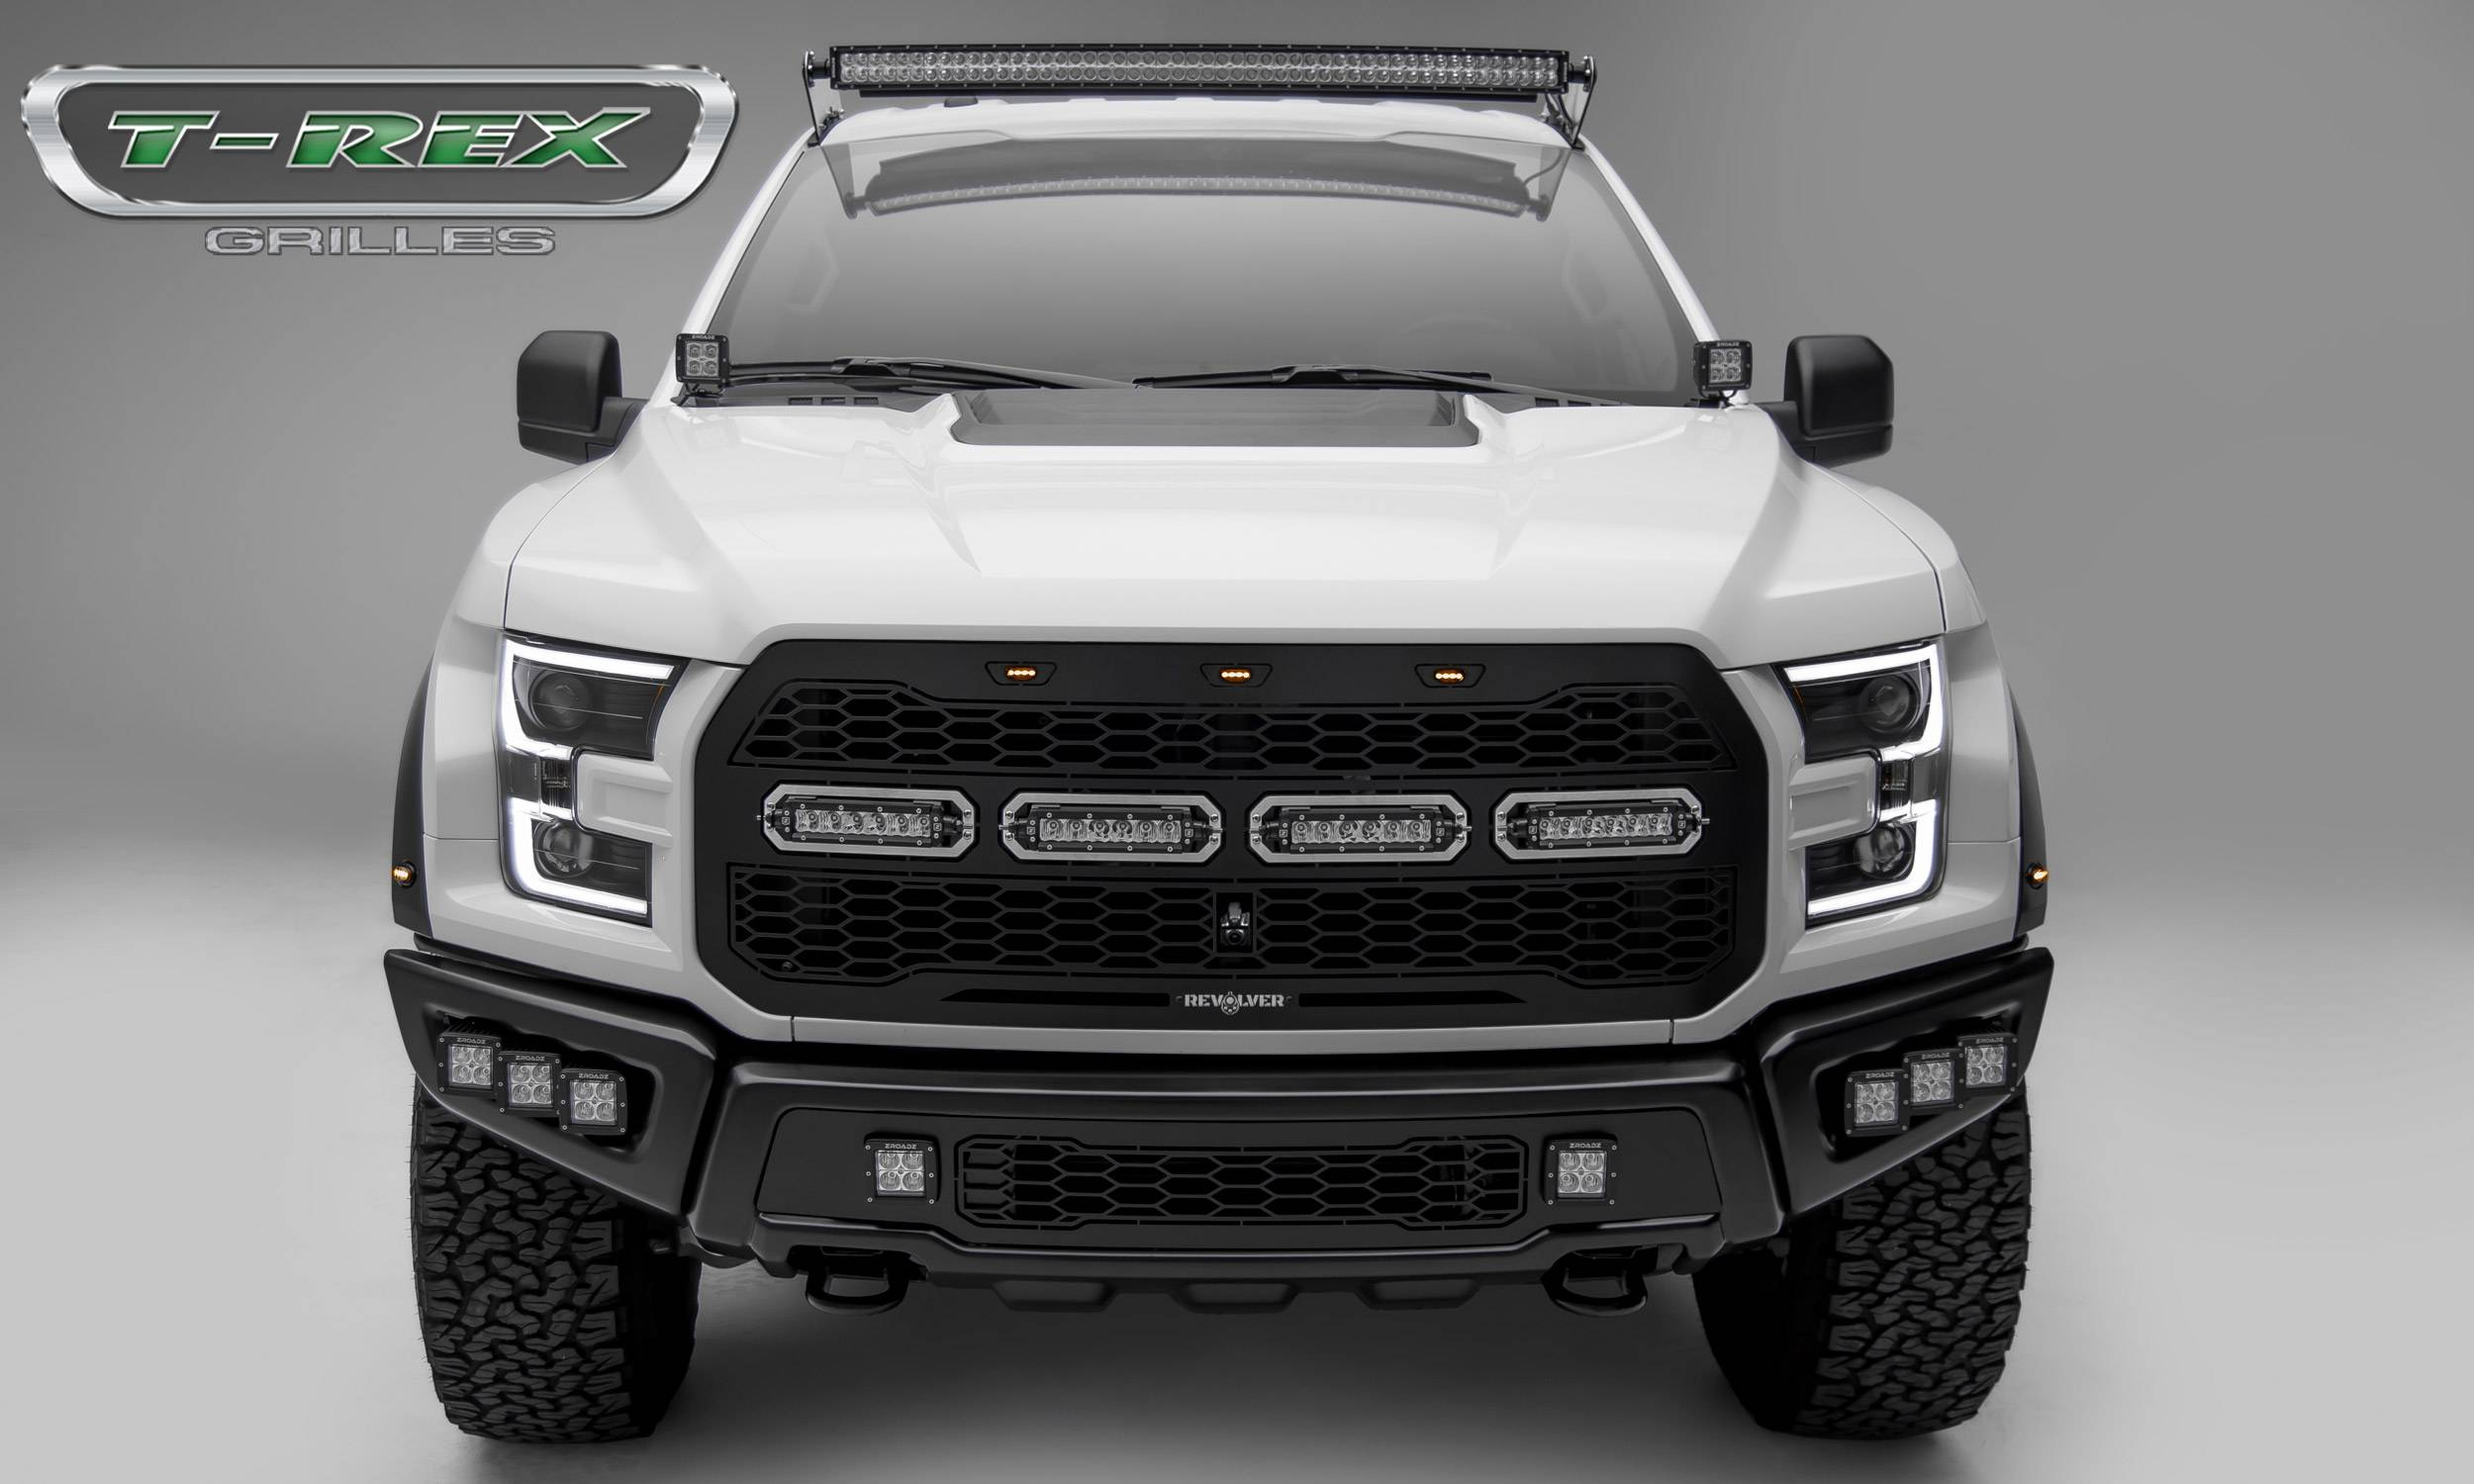 "T-REX Ford F-150 Raptor - Revolver Series - w/ Forward Facing Camera - Main Replacement - Grille w/ (4) 6"" Slim Line Single Row LED Light Bar - Includes Universal Wiring Harness - Part # 6515671"